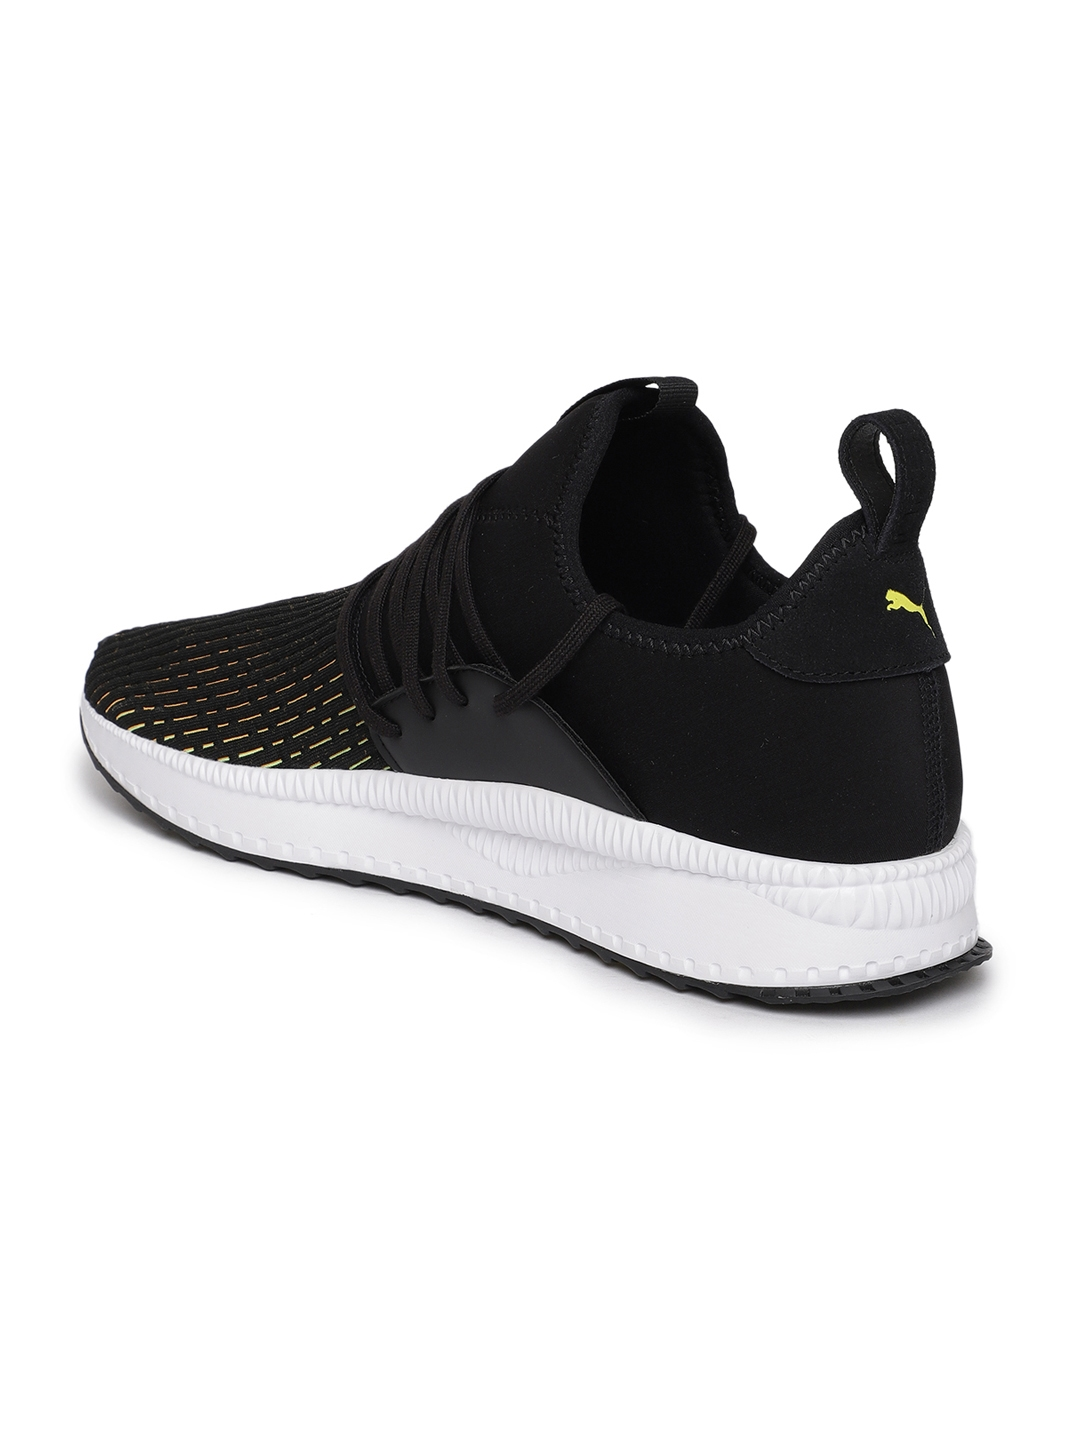 puma tsugi city lights